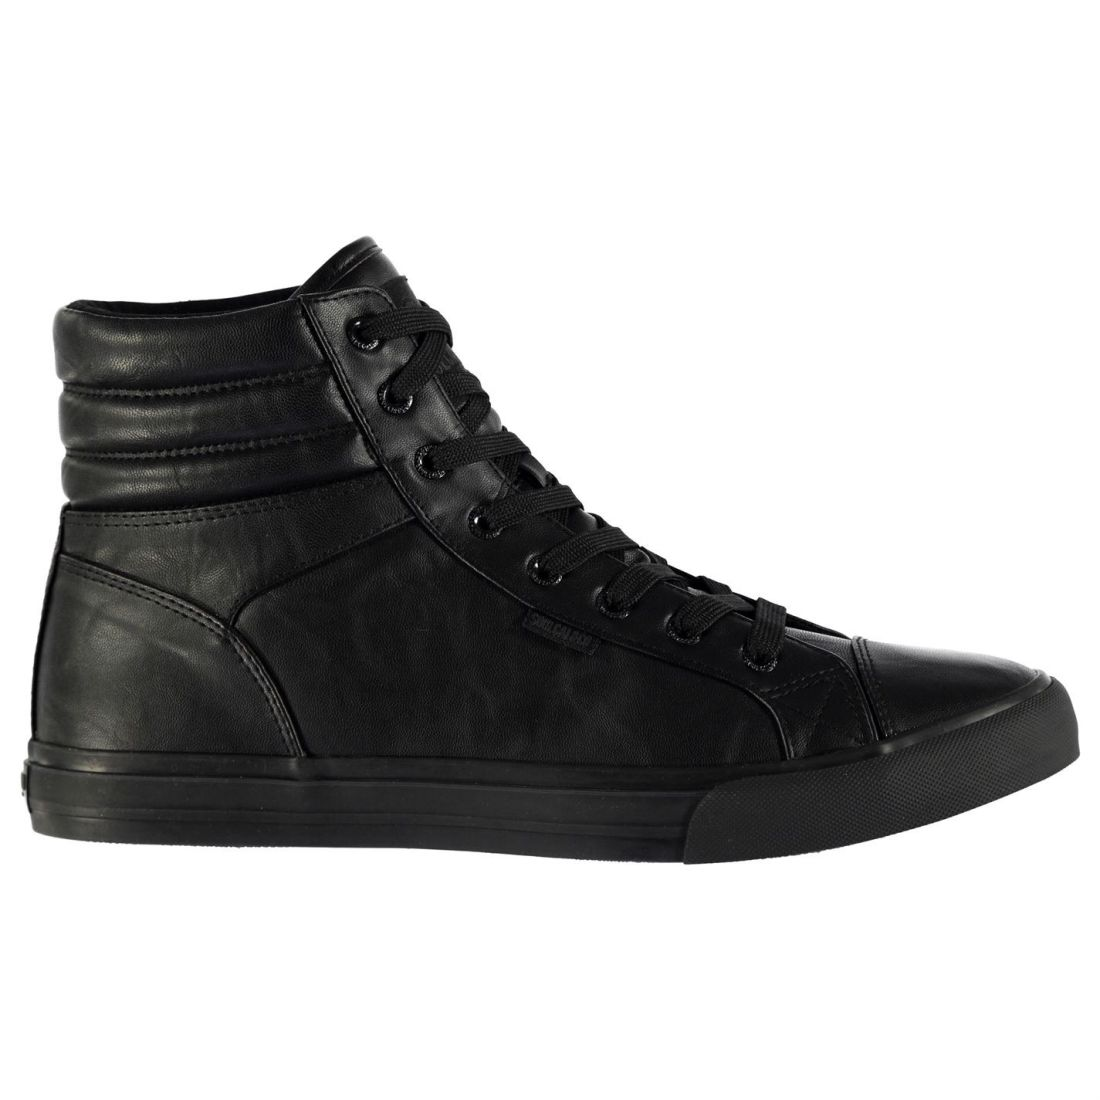 4e1af072ea SoulCal Mens Asti Hi Tops Trainers Lace Up Shoes Smooth Toe Cap ...